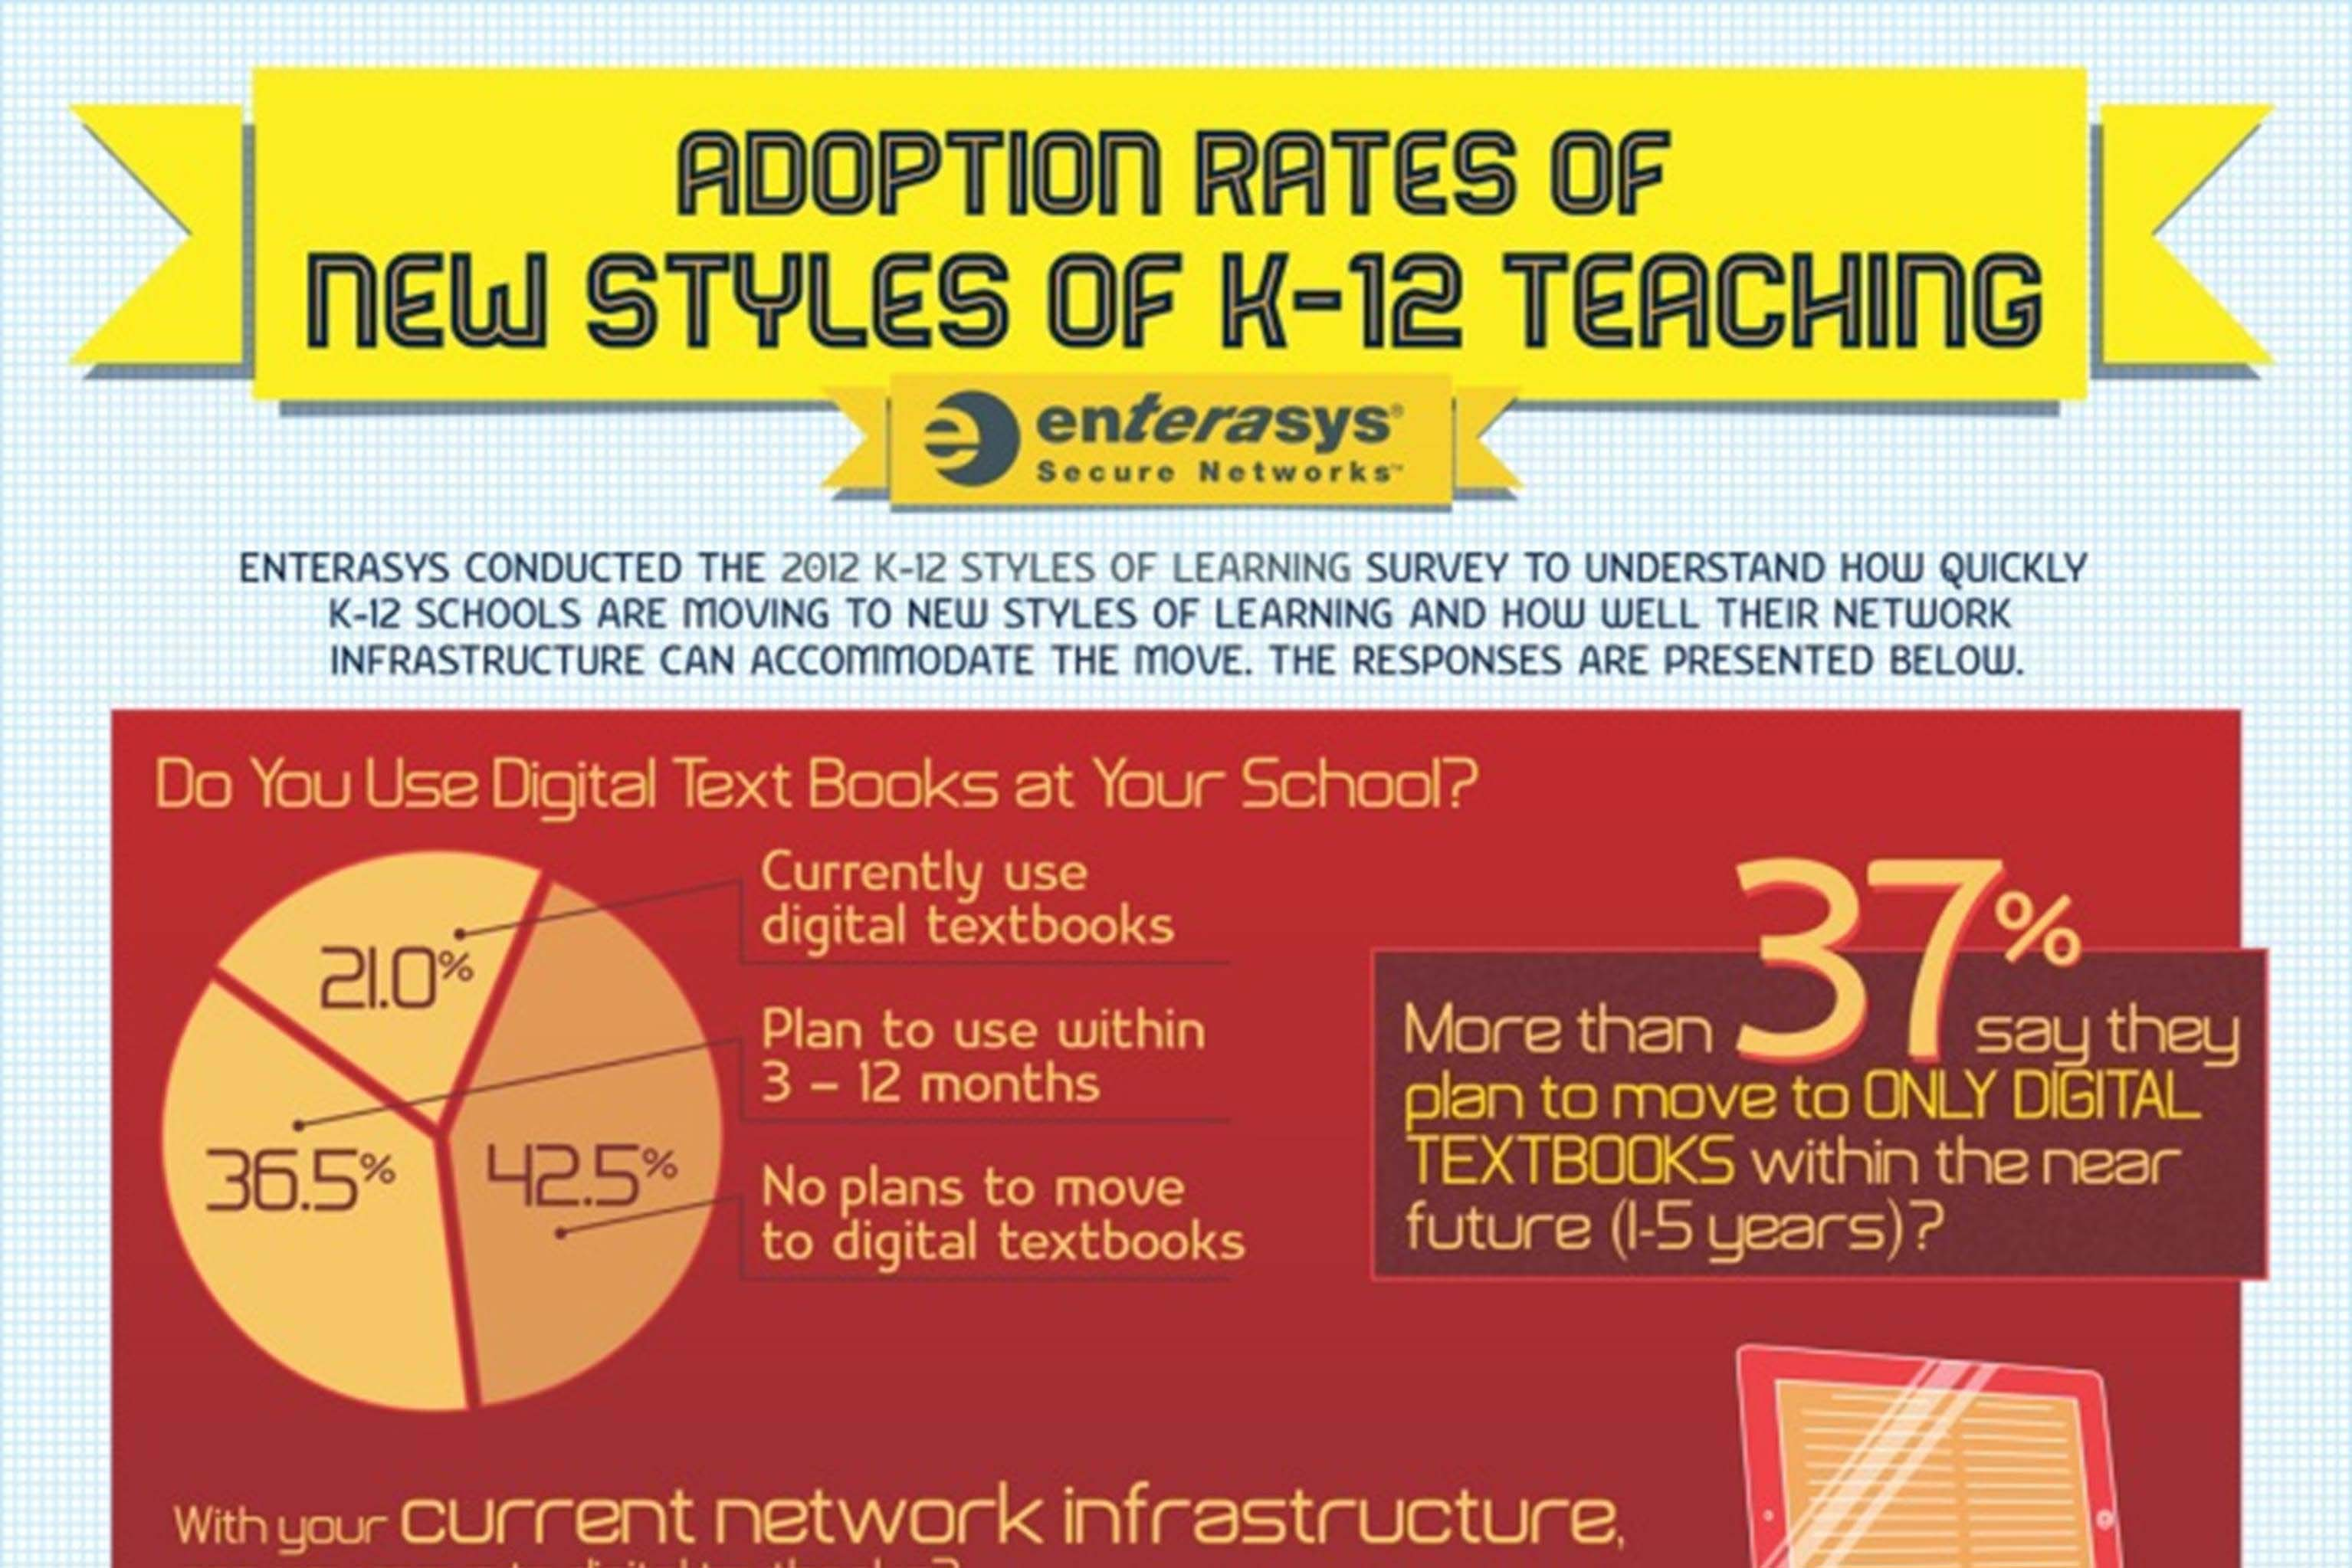 [Infographic] EdTech Adoption Rate in K-12 Teaching